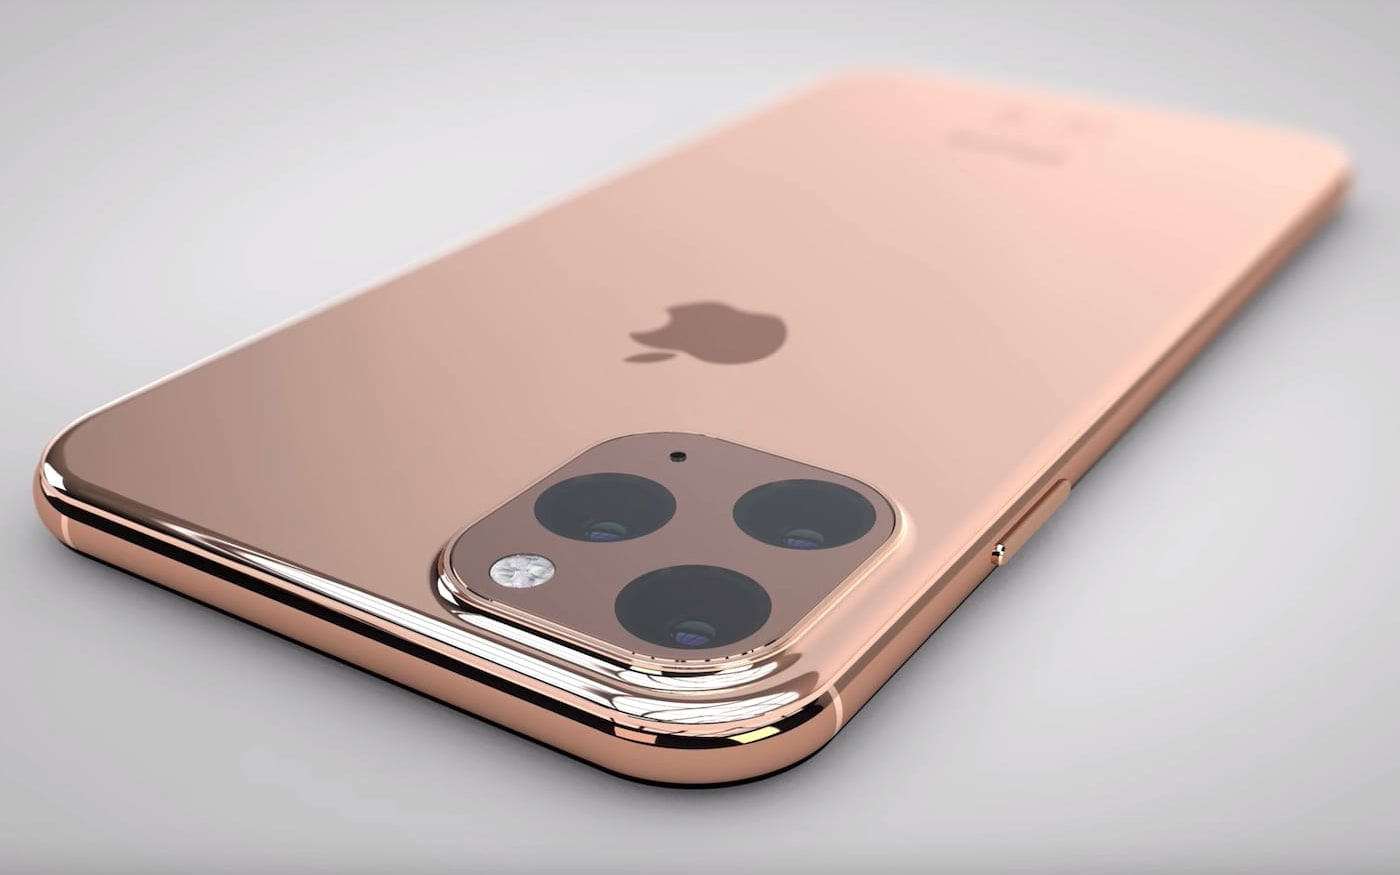 Leaker vaza especificações do novo iPhone 11